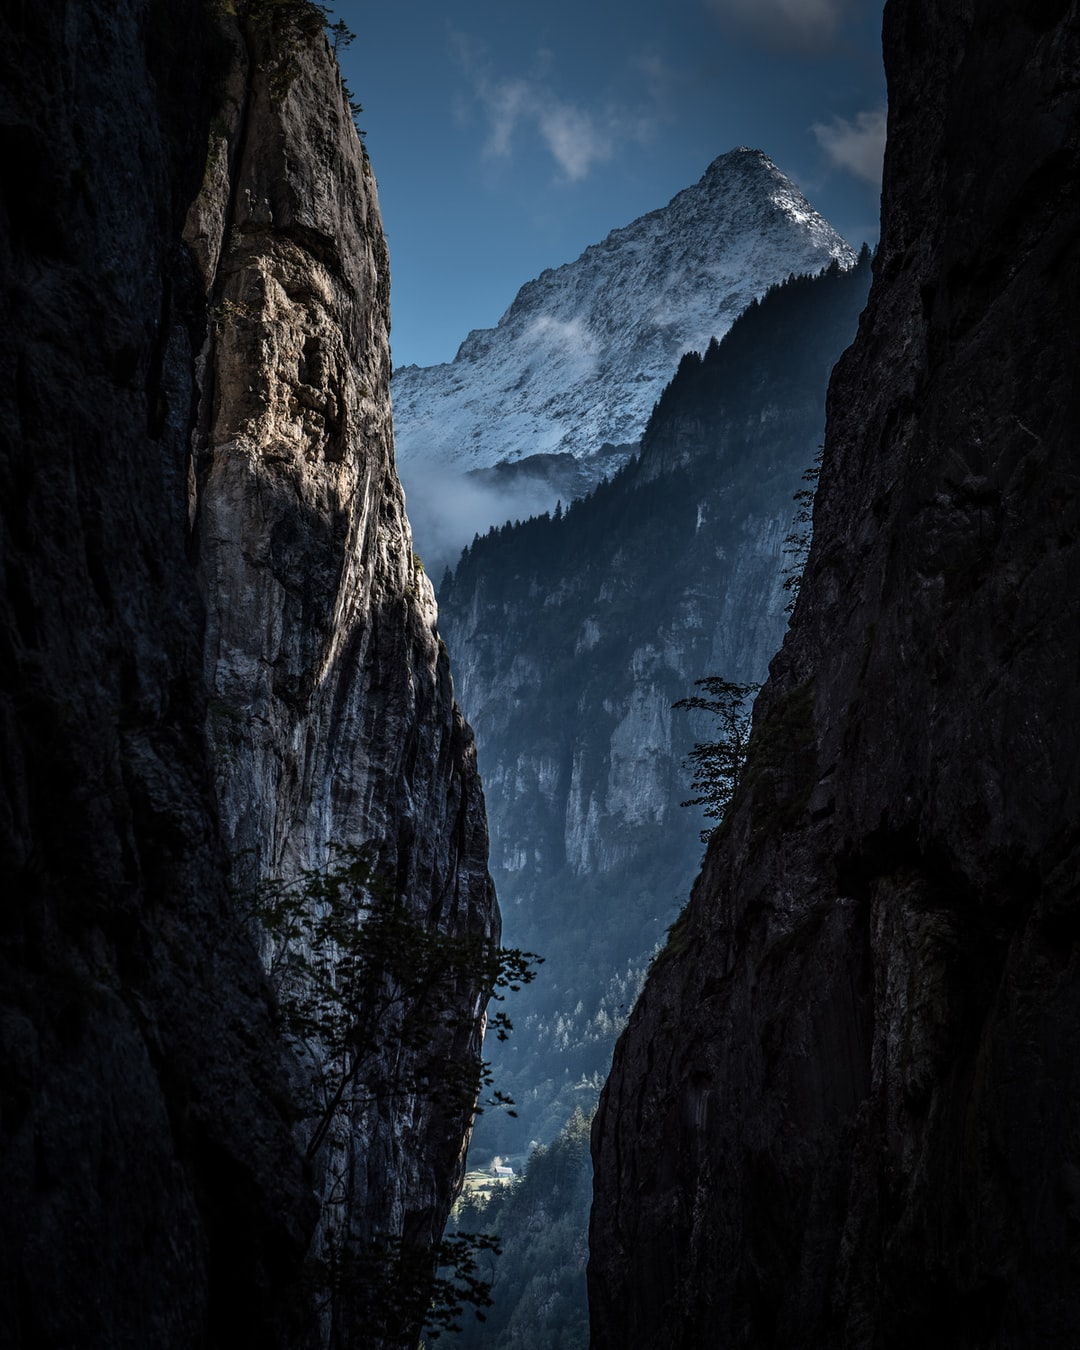 view out of Aare gorge in Berner Oberland region, majestic mountain peak throning high, Swiss mountains, Swiss alps